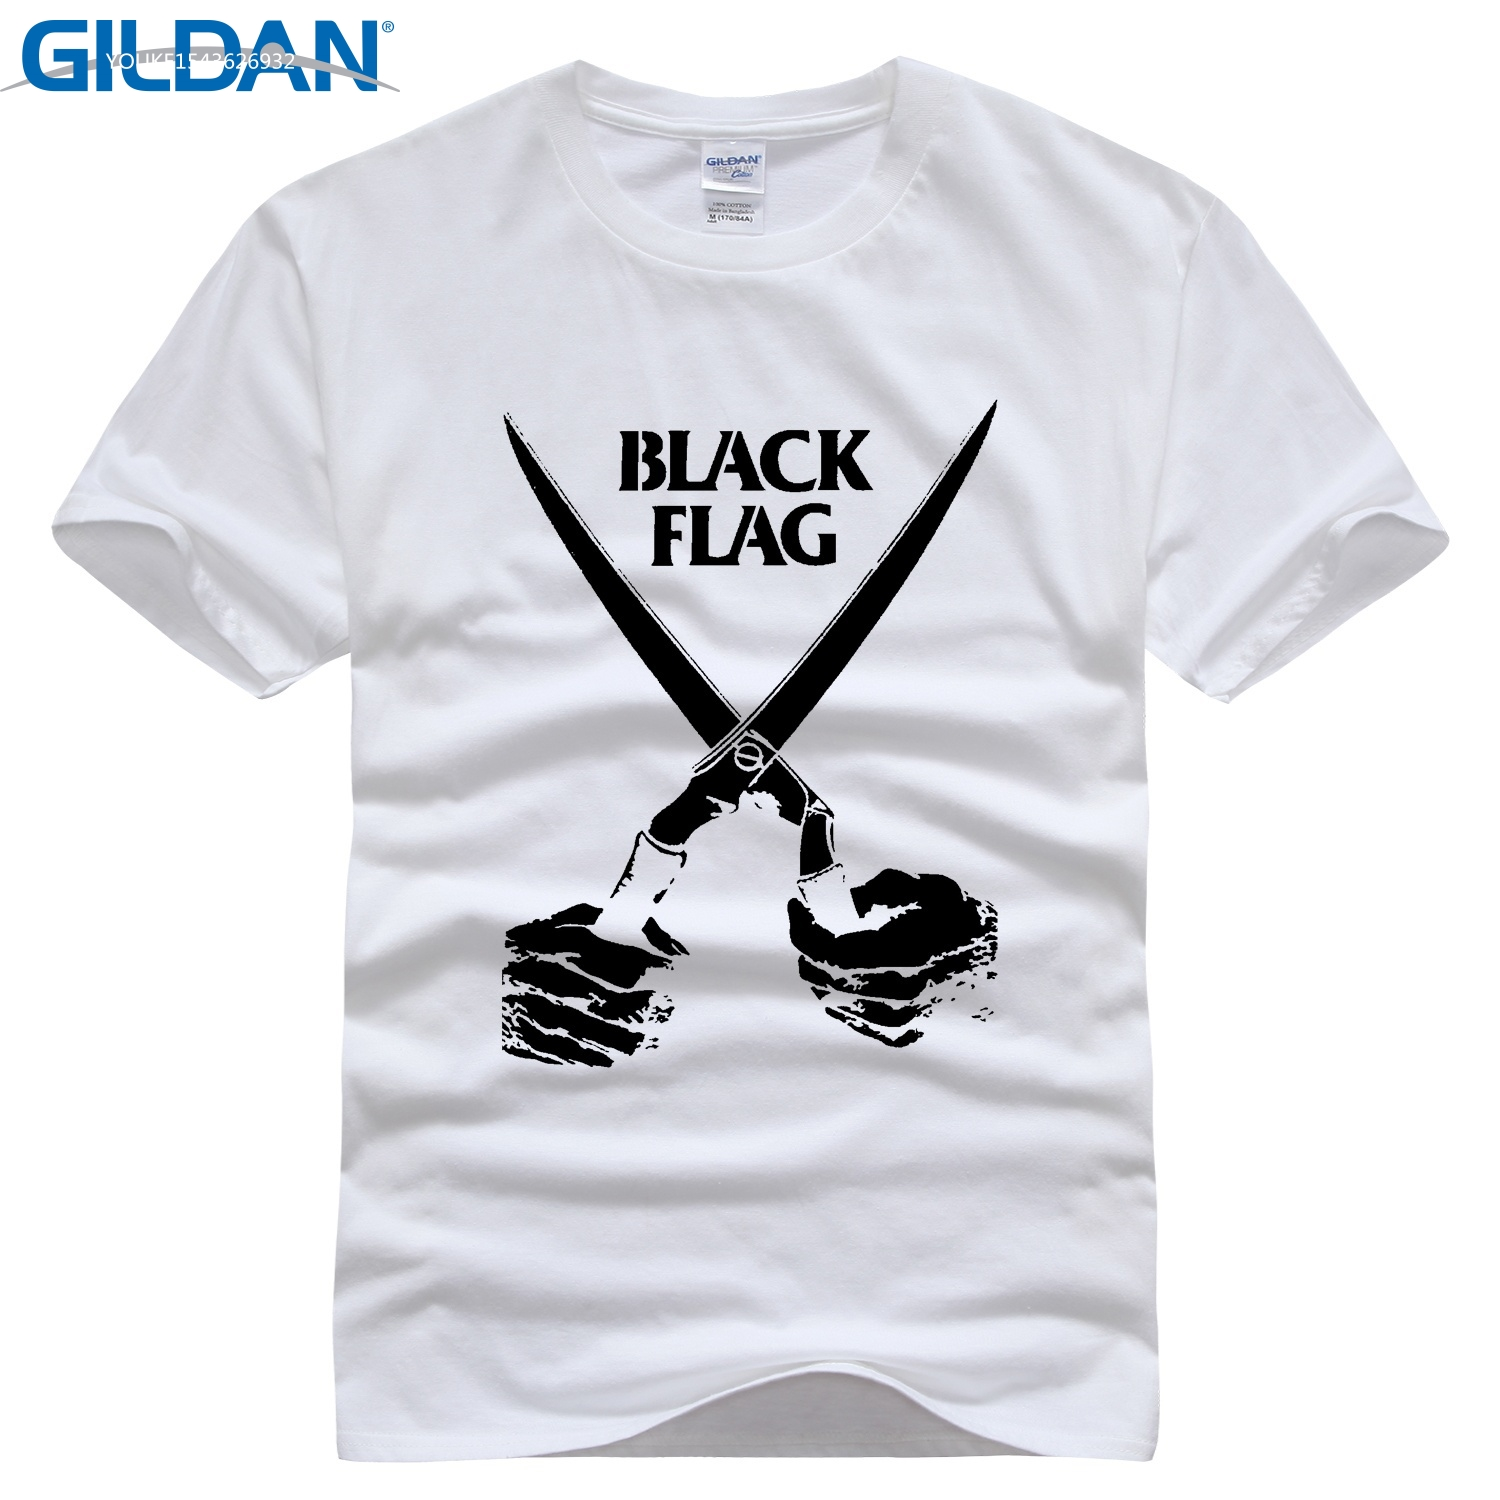 GILDAN T shirt Mens Twin Peaks Black Flag Tee Shirt Accept Customized 100% Cotton